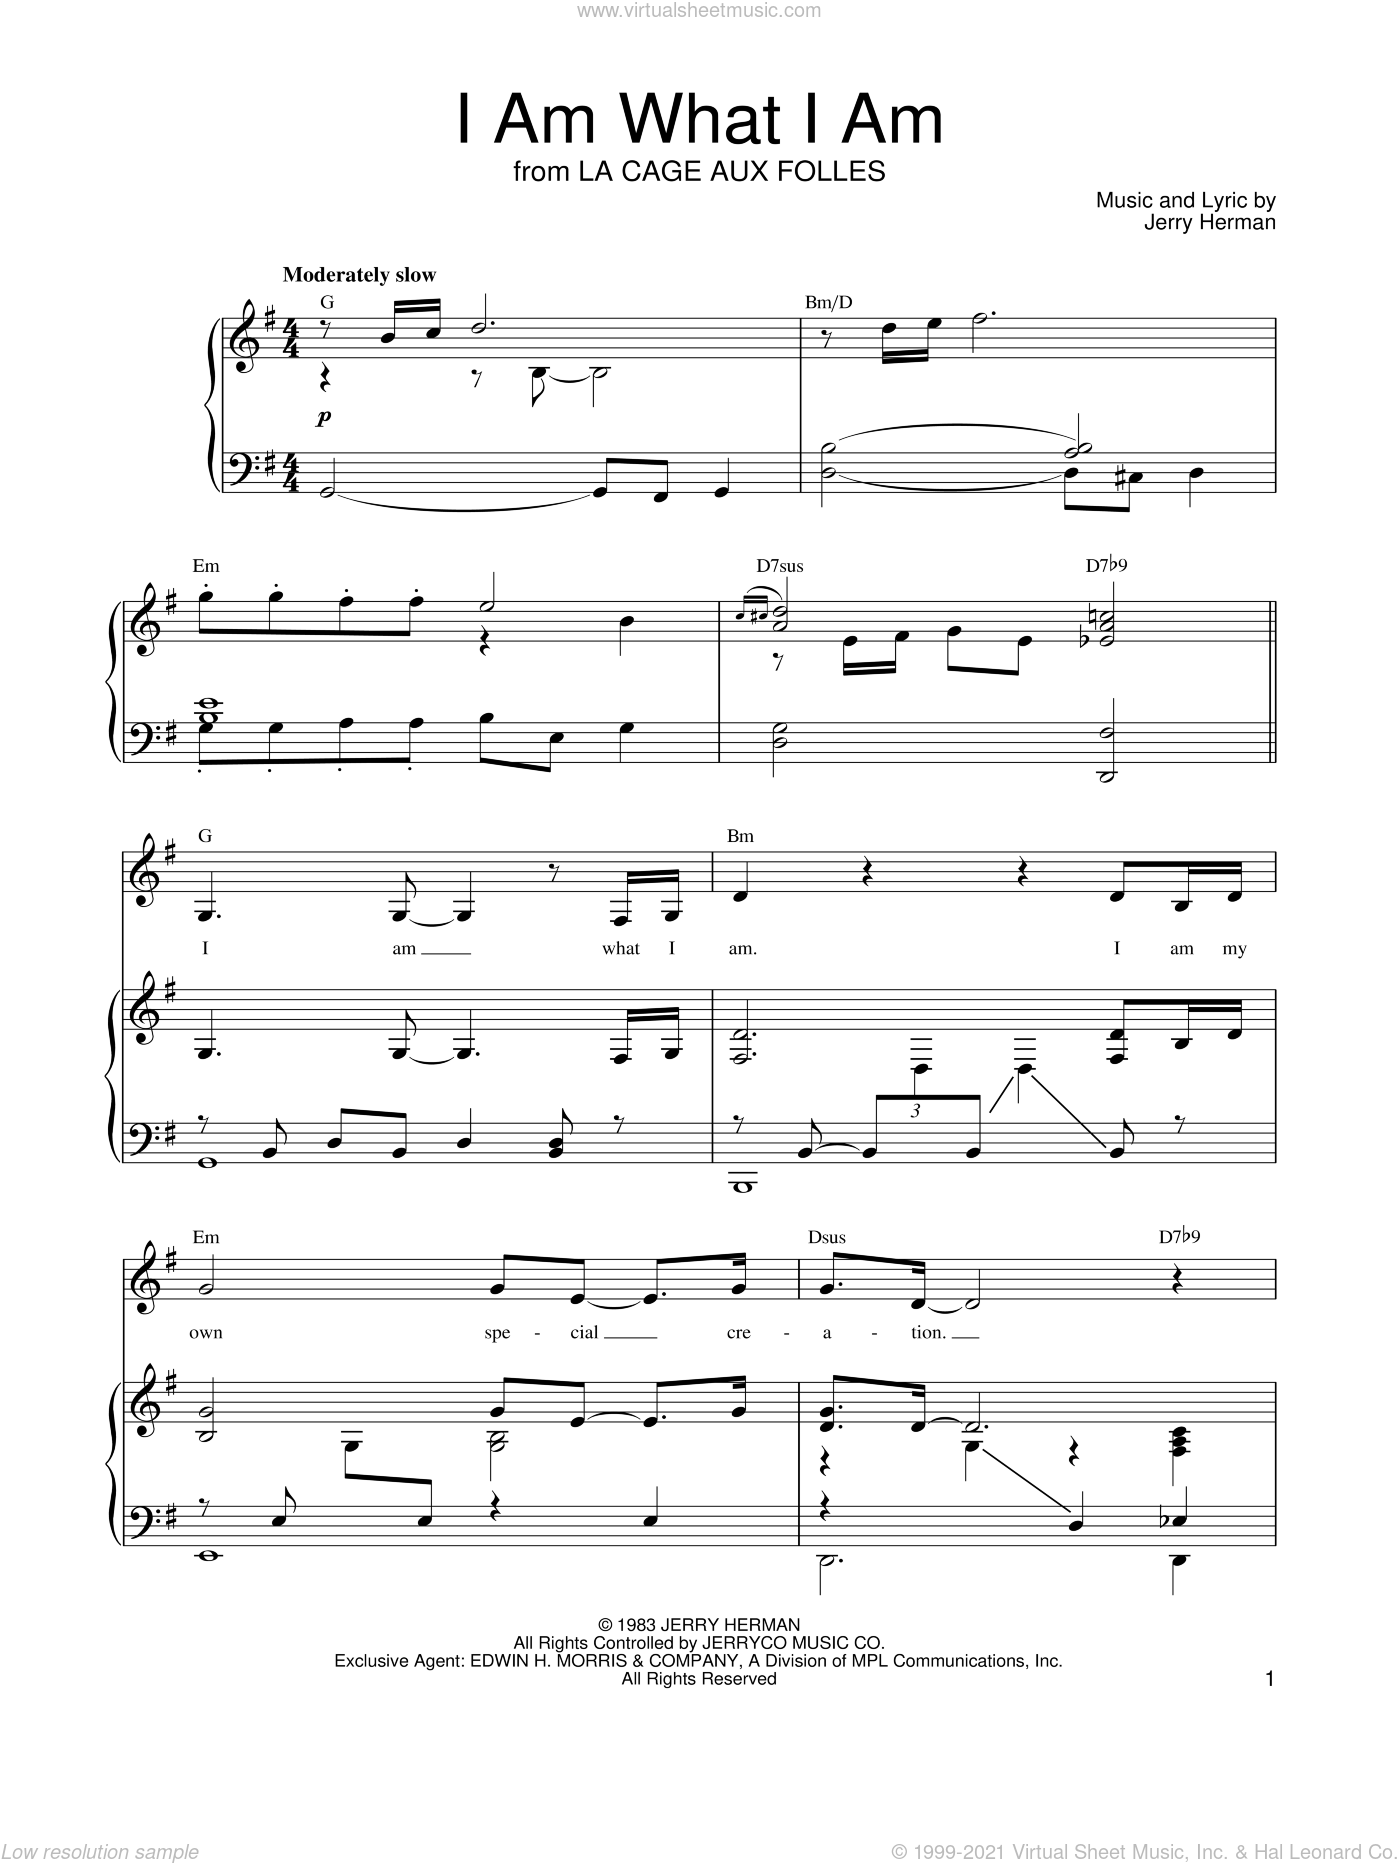 I Am What I Am (from La Cage Aux Folles) sheet music for voice, piano or guitar by Linda Eder, Gloria Gaynor, Shirley Bassey and Jerry Herman, intermediate skill level